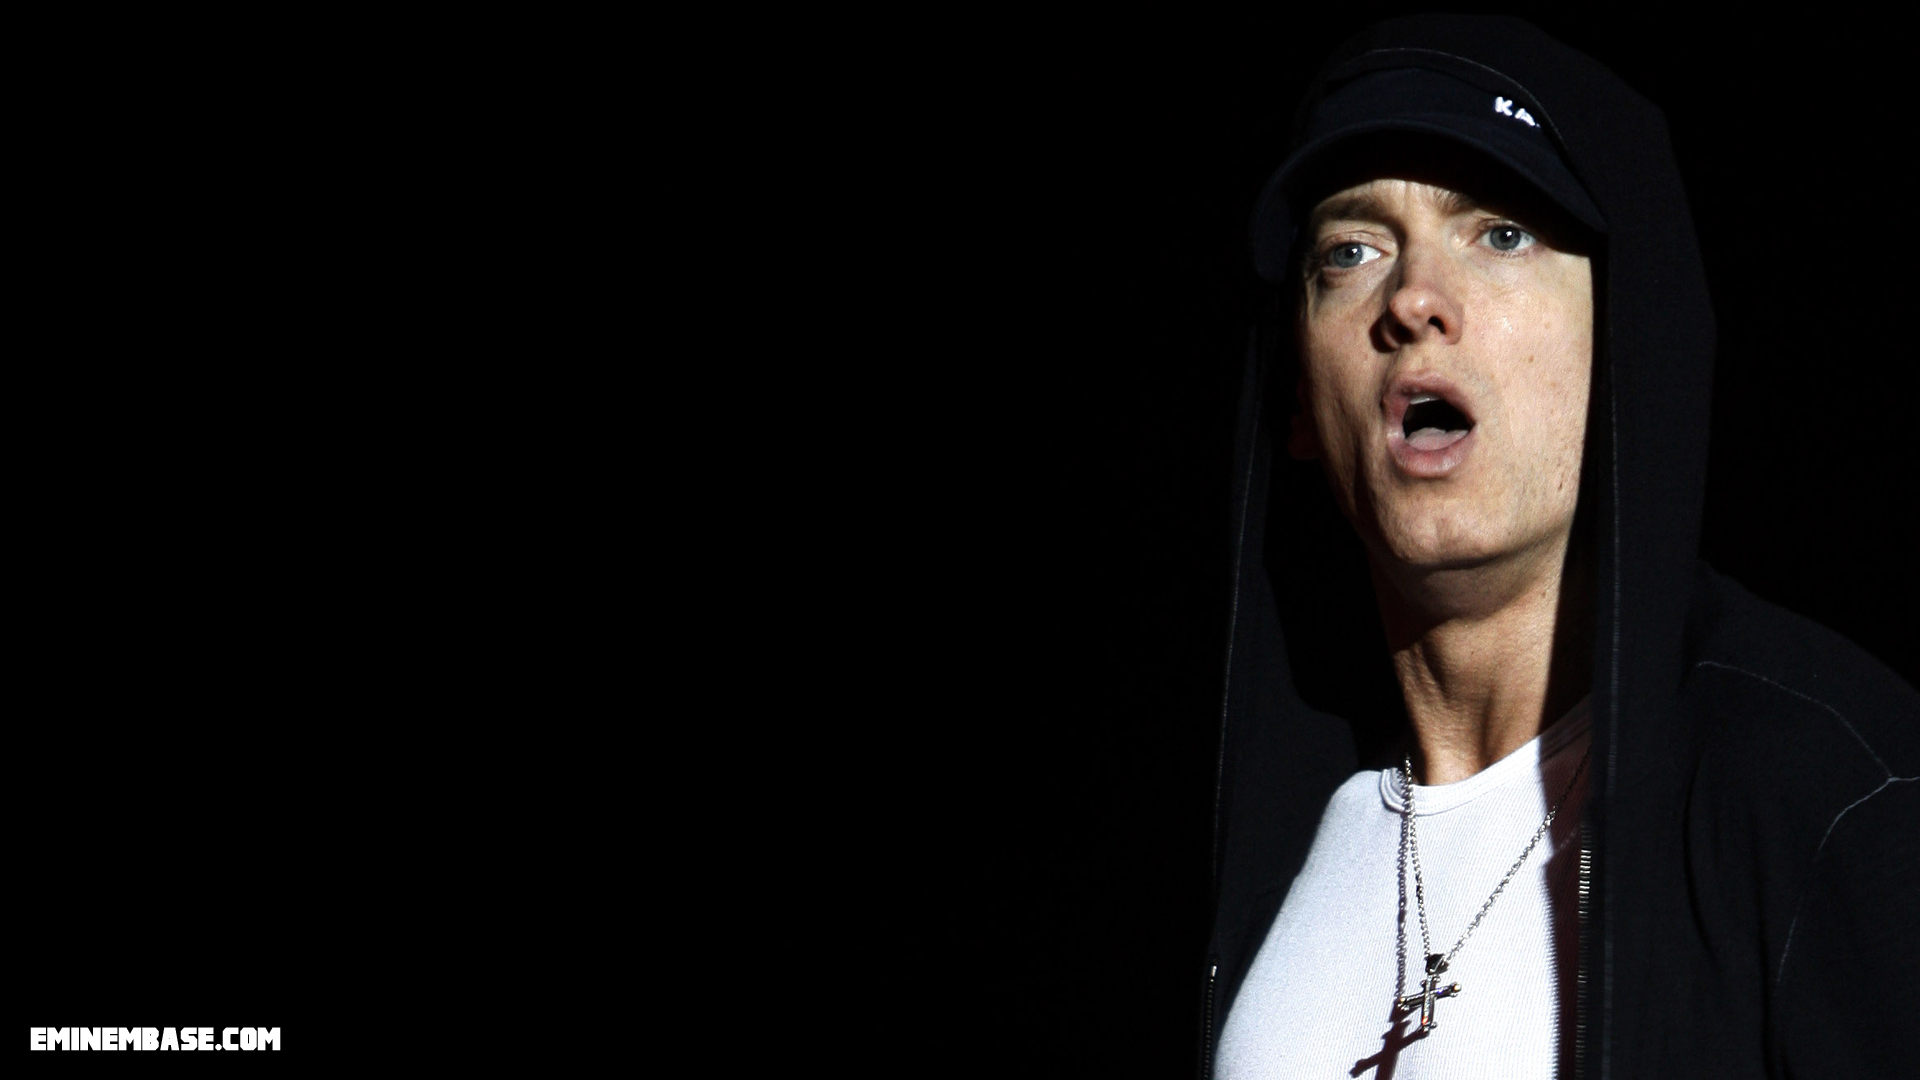 eminem wallpapers - photo #9